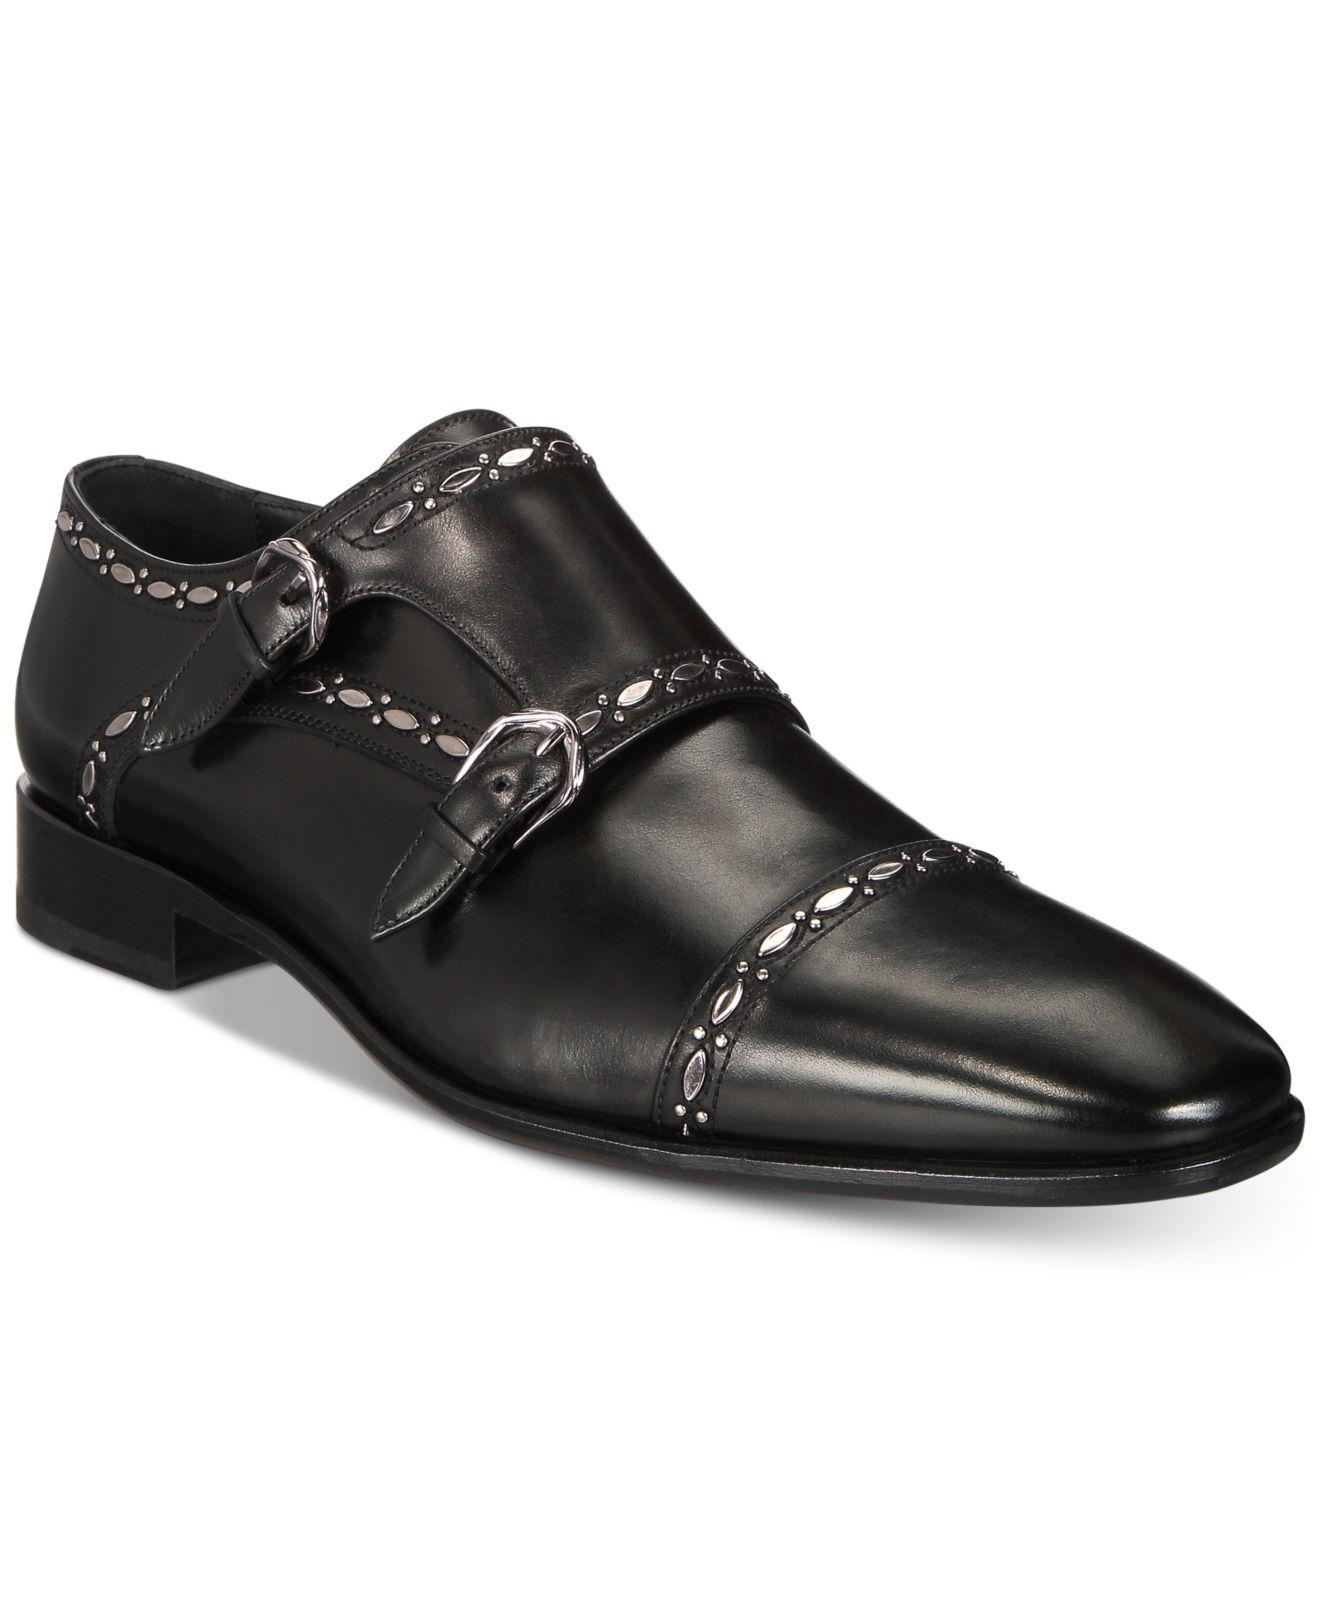 1866a3f495c Lyst - Roberto Cavalli Cap Toe Double-buckle Monk Strap Loafers in Black